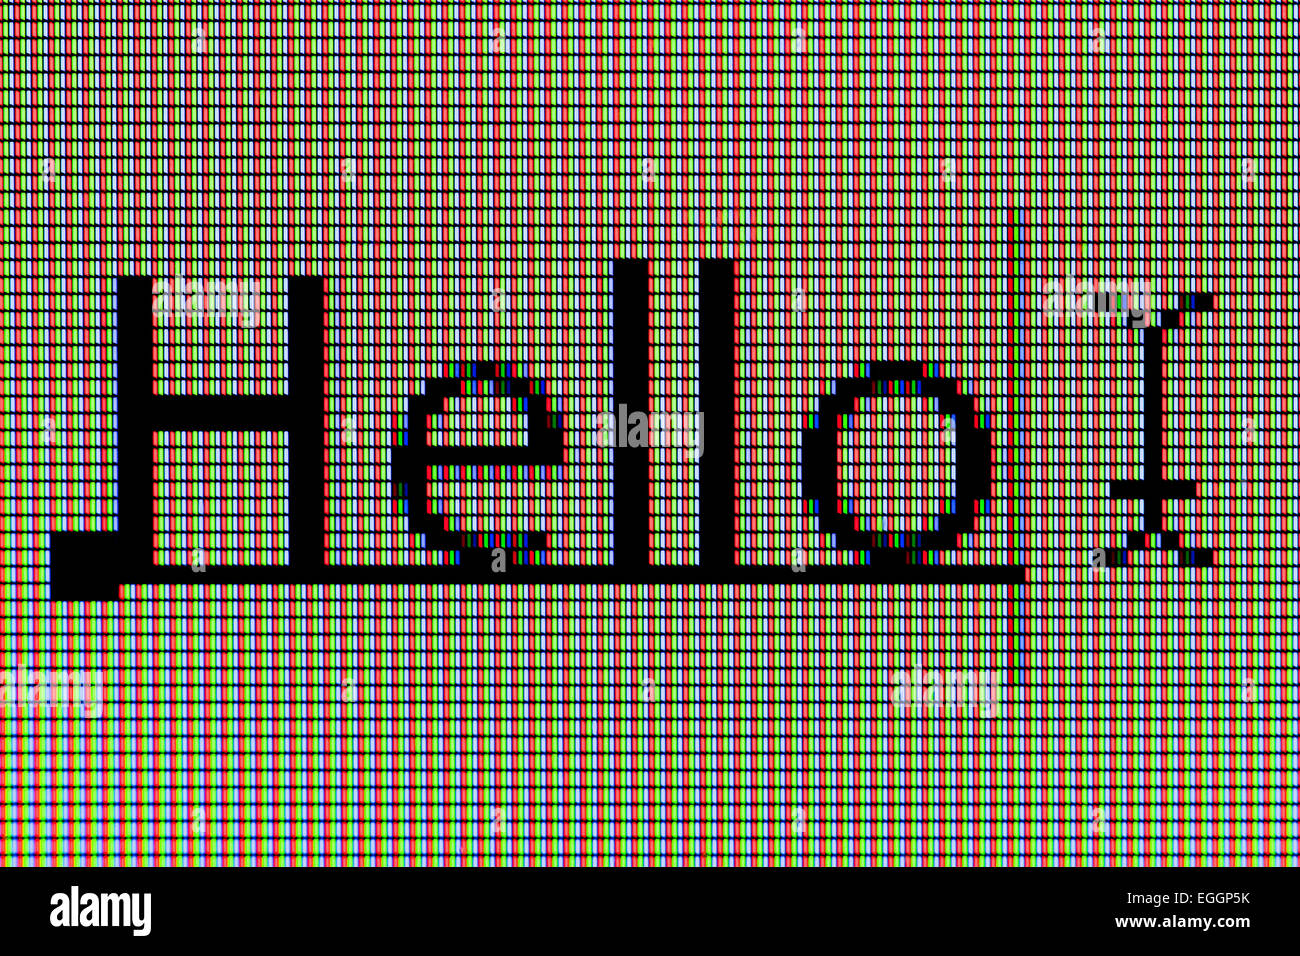 Closeup of word 'Hello' on LCD computer screen - Stock Image